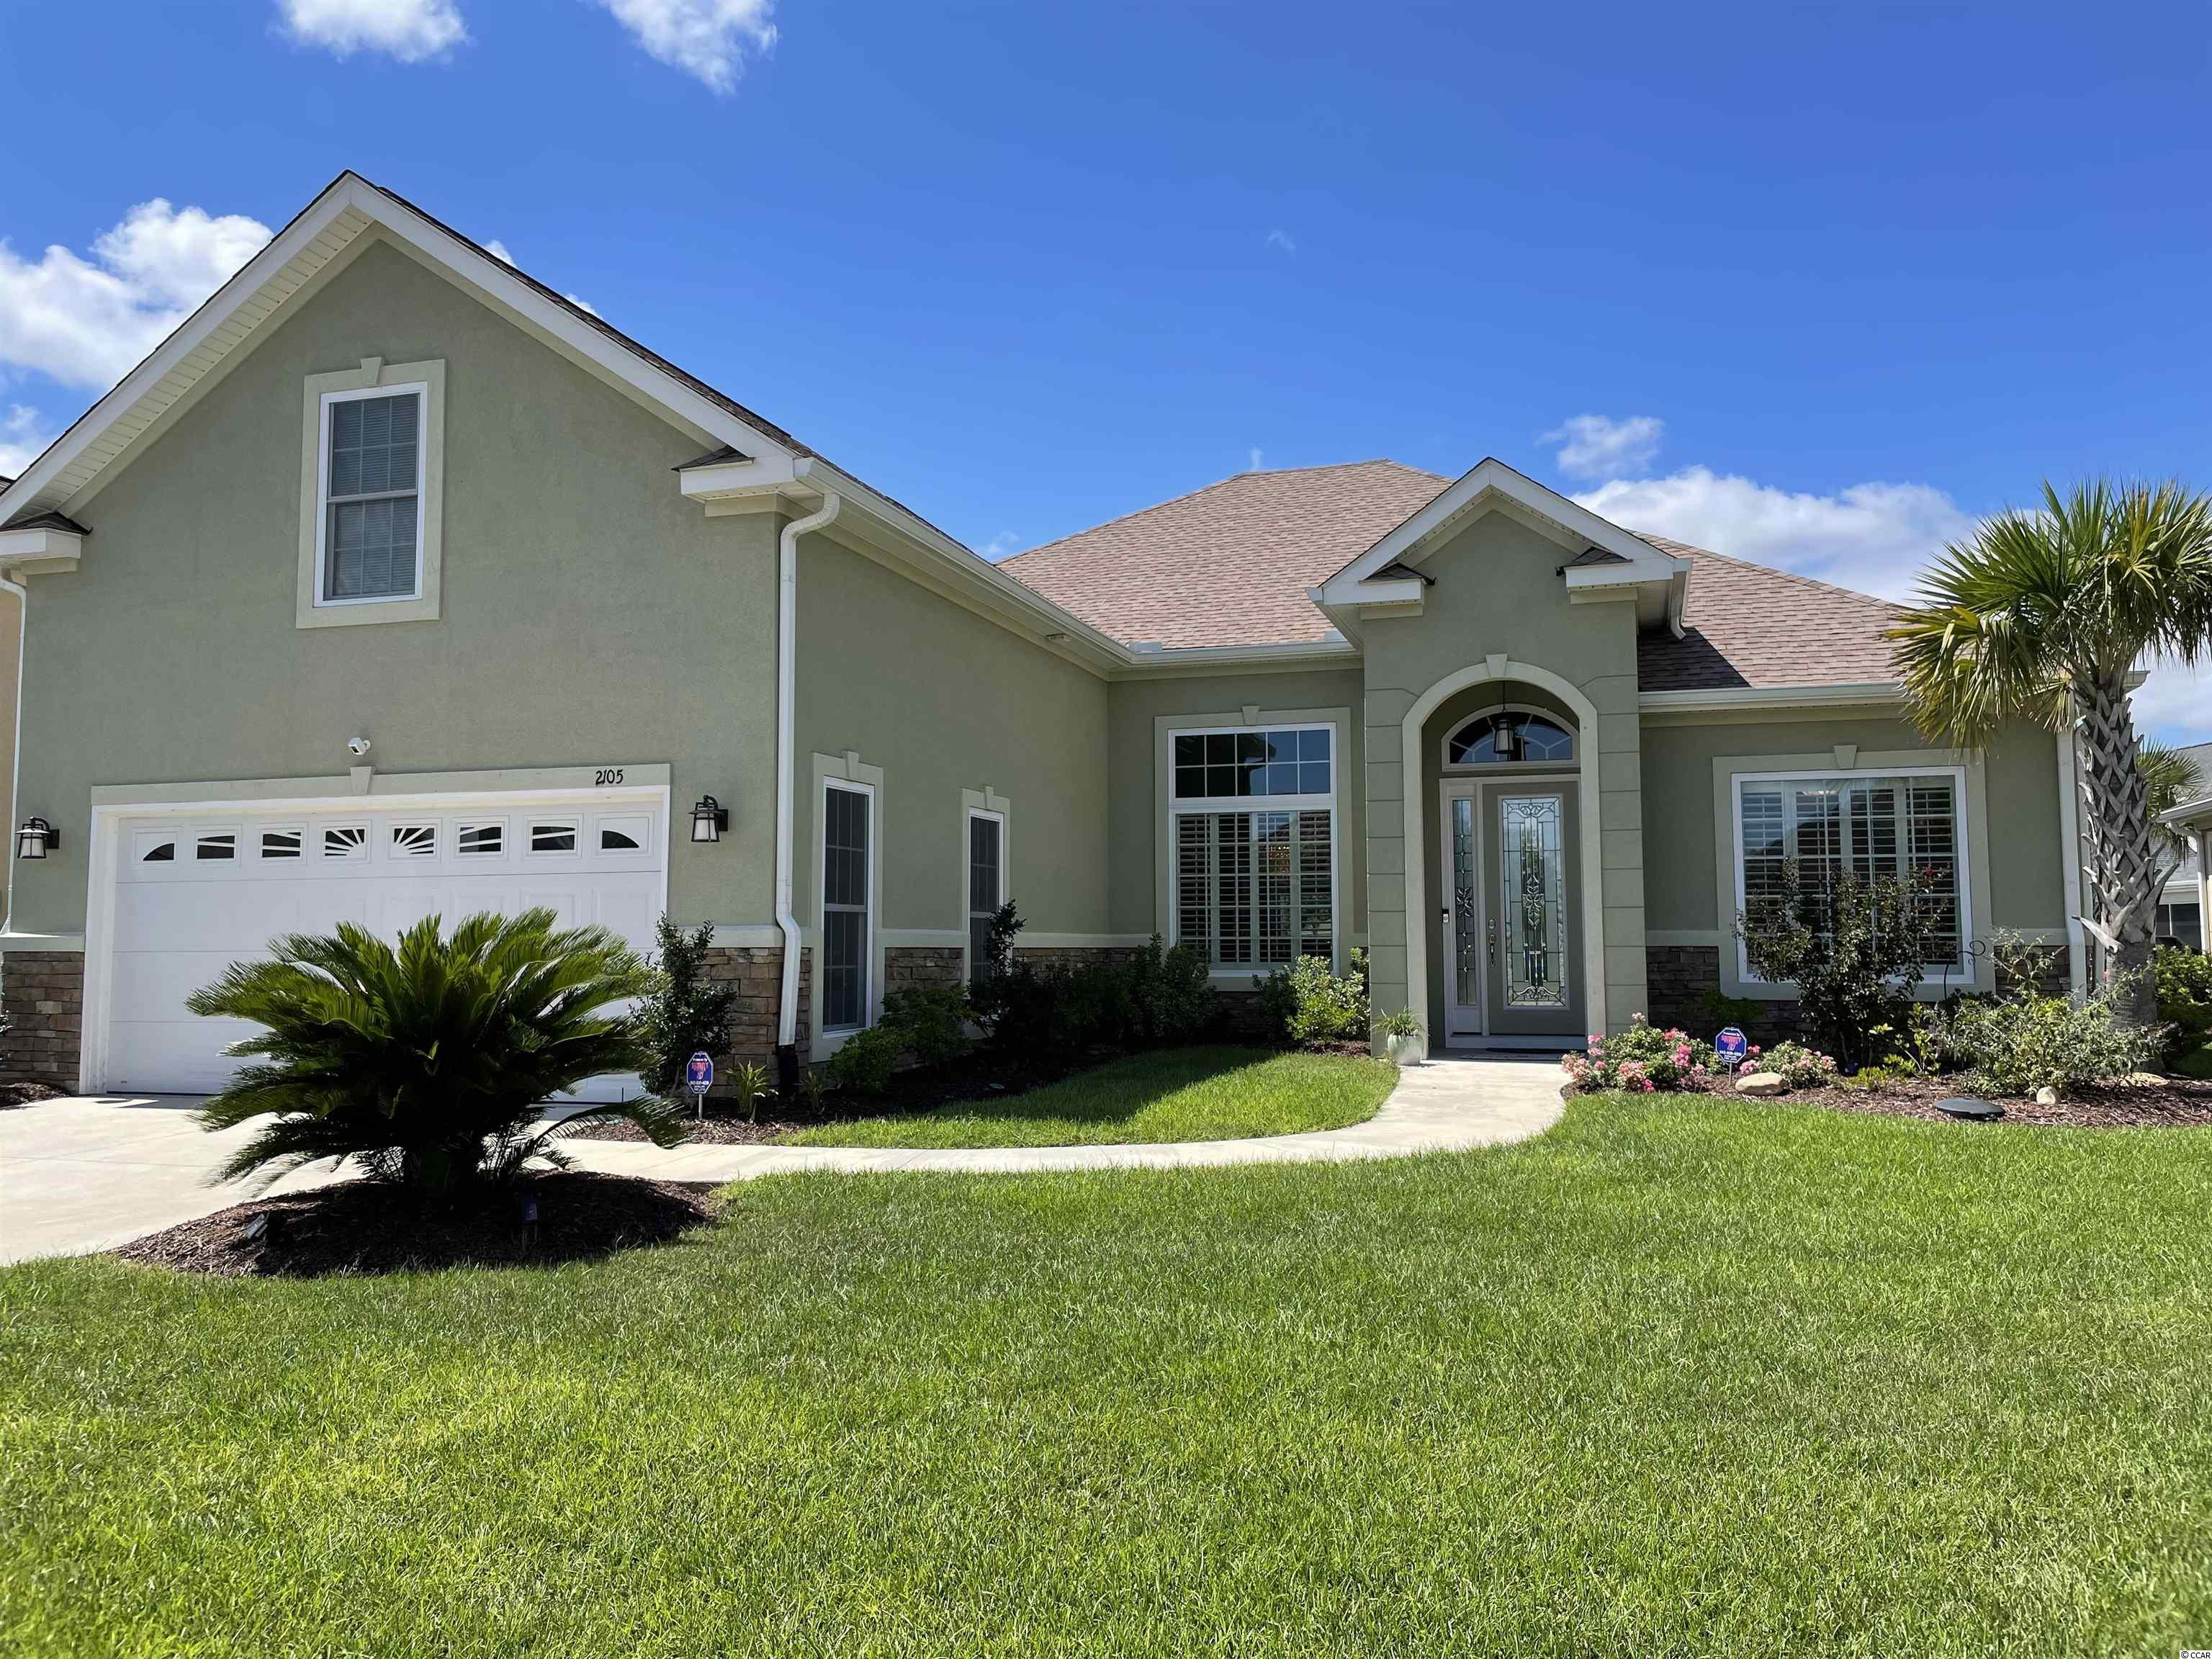 This beautifully upgraded Mediterranean style home is located in the popular Tuscan Sands subdivision at Barefoot Resort and Golf. Upgrades include, but are not limited to, twelve foot ceilings, Carolina room with custom cabinetry and built in bar, a four (4) foot wide disappearing sliding doors unit leading to a nine hundred (900) square foot pavered patio complete with built in planters, portable fire pit, and large hot tub. Other upgrades include custom living room cabinetry, an electric fireplace, a fully wheelchair accessible master bath, and an outdoor shower. This home has over 2,600 square feet of air conditioned living area and is just over 3,200 total square feet, thus providing a generous amount of open floor living space. From the kitchen's level 2 granite and stainless steel appliances (including double oven) to the master suite and bath's double sinks and luxurious walk-in shower, this house exudes quality craftsmanship. If you are looking for a house built with extra care and attention to detail, this is it. This home was custom built for the owners in 2018. They have been the sole occupiers of the house for the past three (3) years. Tuscan Sands has a prime location within the Resort. It is within walking distance of the Resort Clubhouse, driving range, and restaurants. You are also a little over a mile to the ocean and right across the Intracoastal from Barefoot Landing and all that the beach has to offer. You could not ask for a better place to call home. Don't miss out on this amazing opportunity to live in the lap of luxury at Barefoot Resort and Golf!